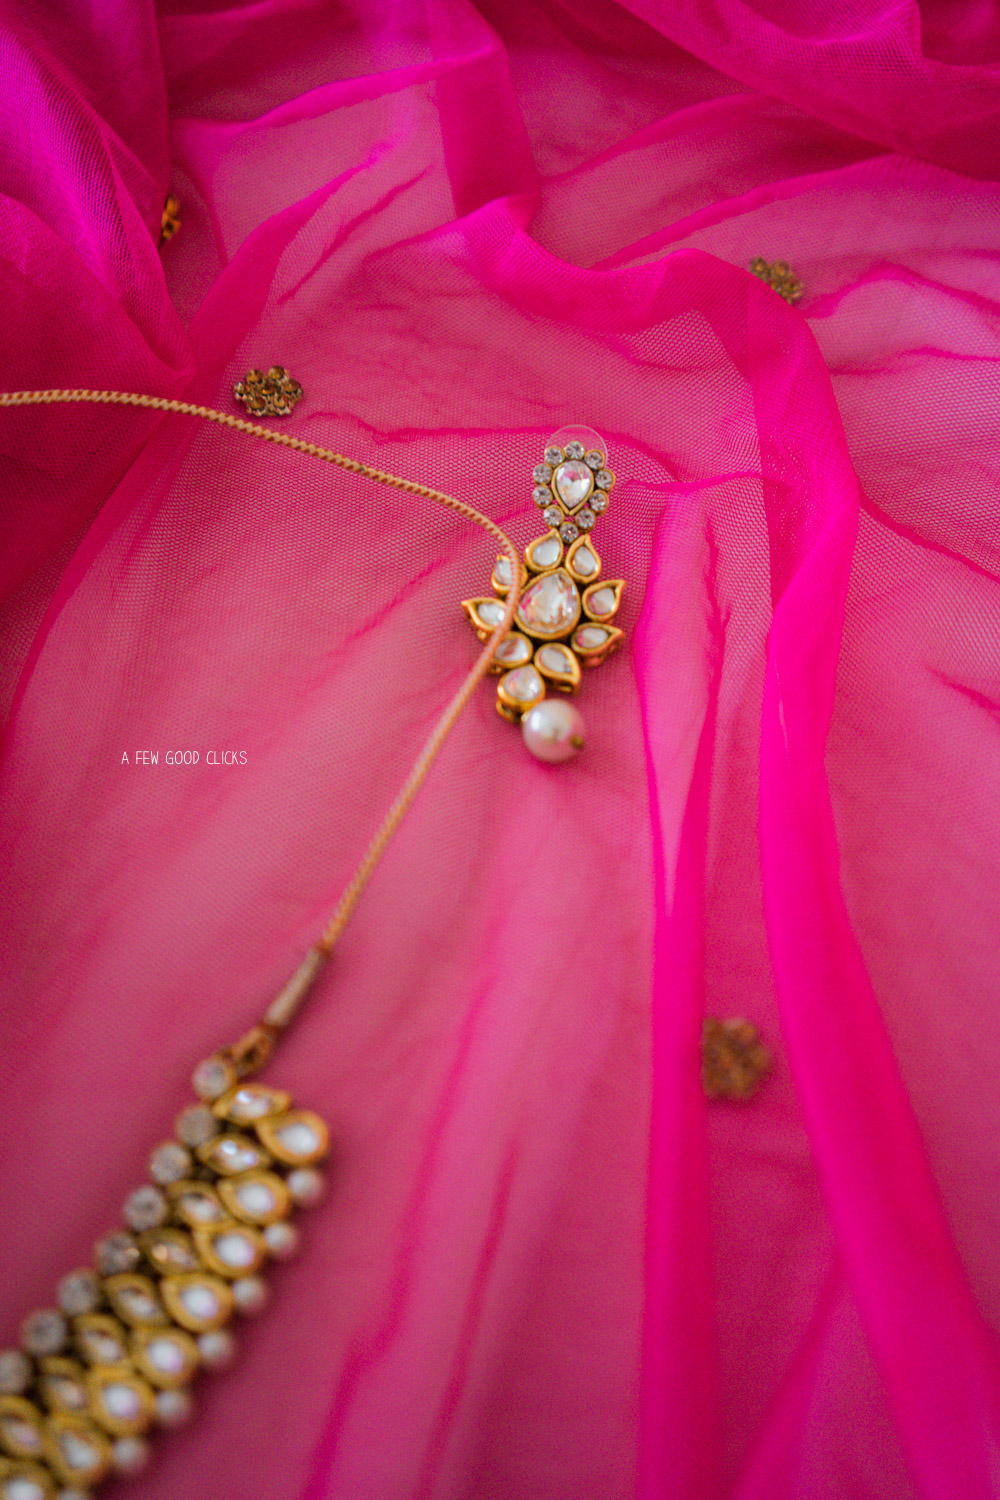 indian-bride-wedding-photography-by-afewgoodclicks-9.jpg